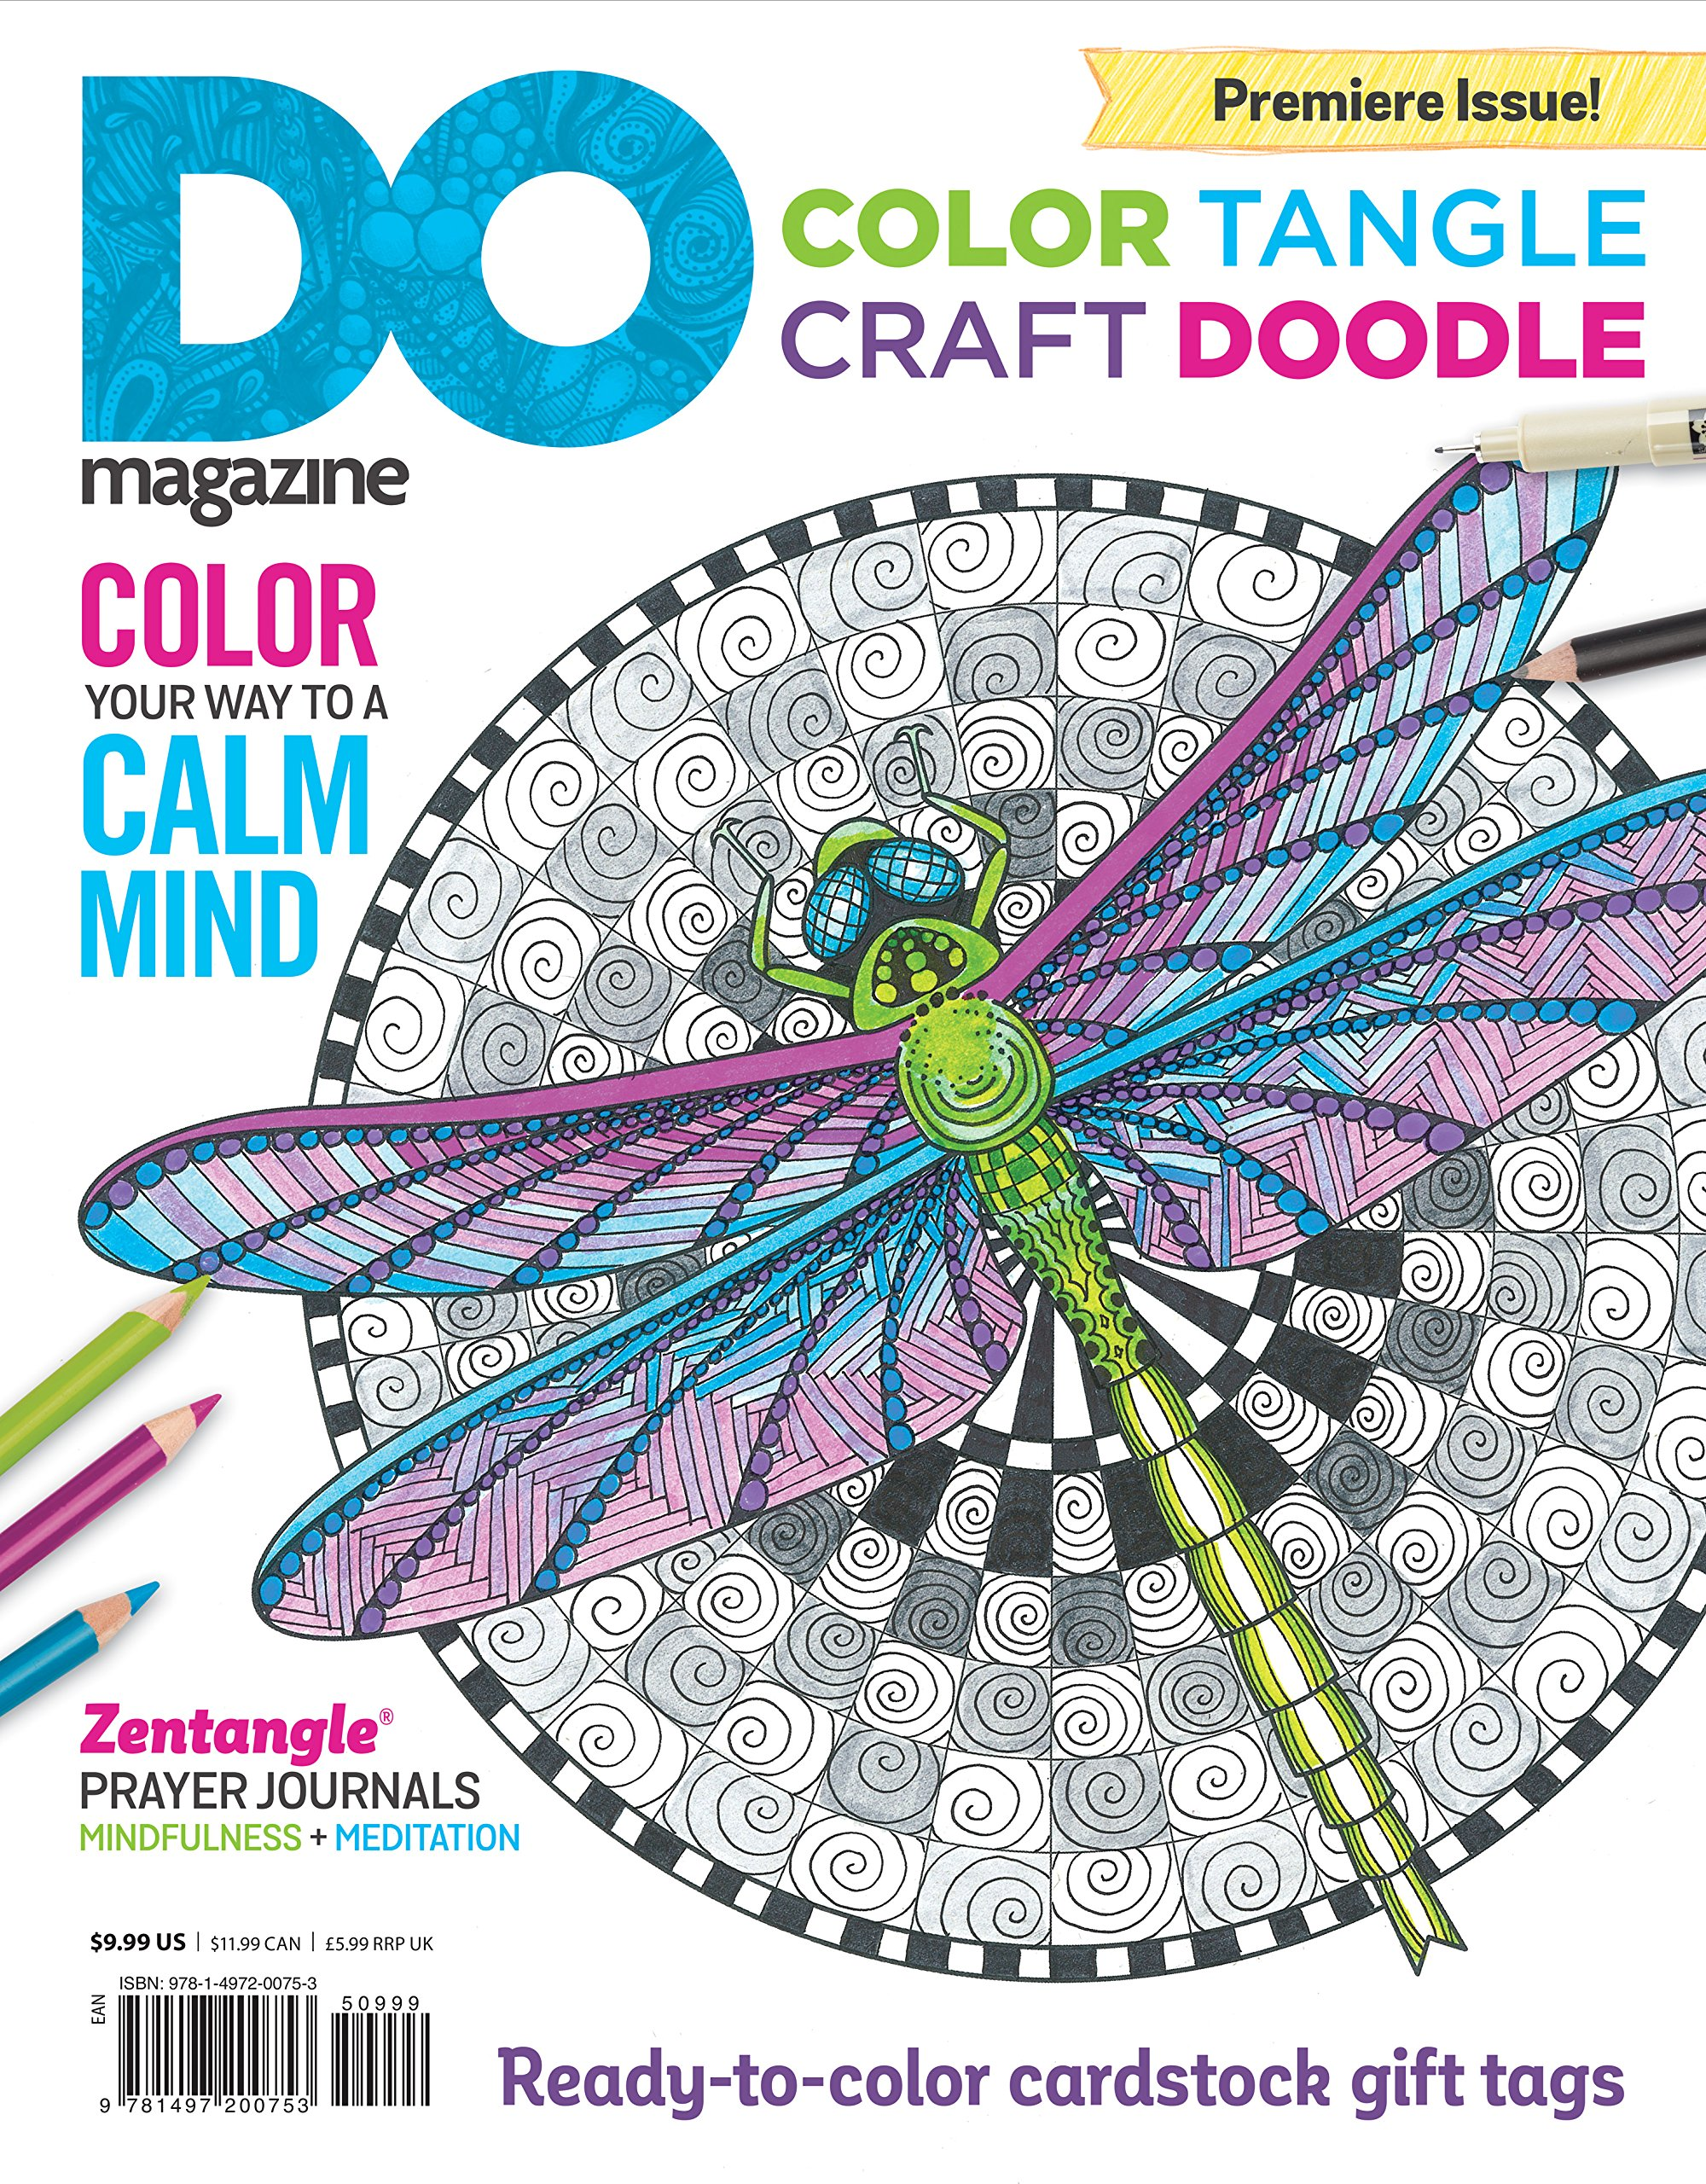 Color, Tangle, Craft, Doodle: DO Magazine, Color Your Way to a Calm Mind ebook